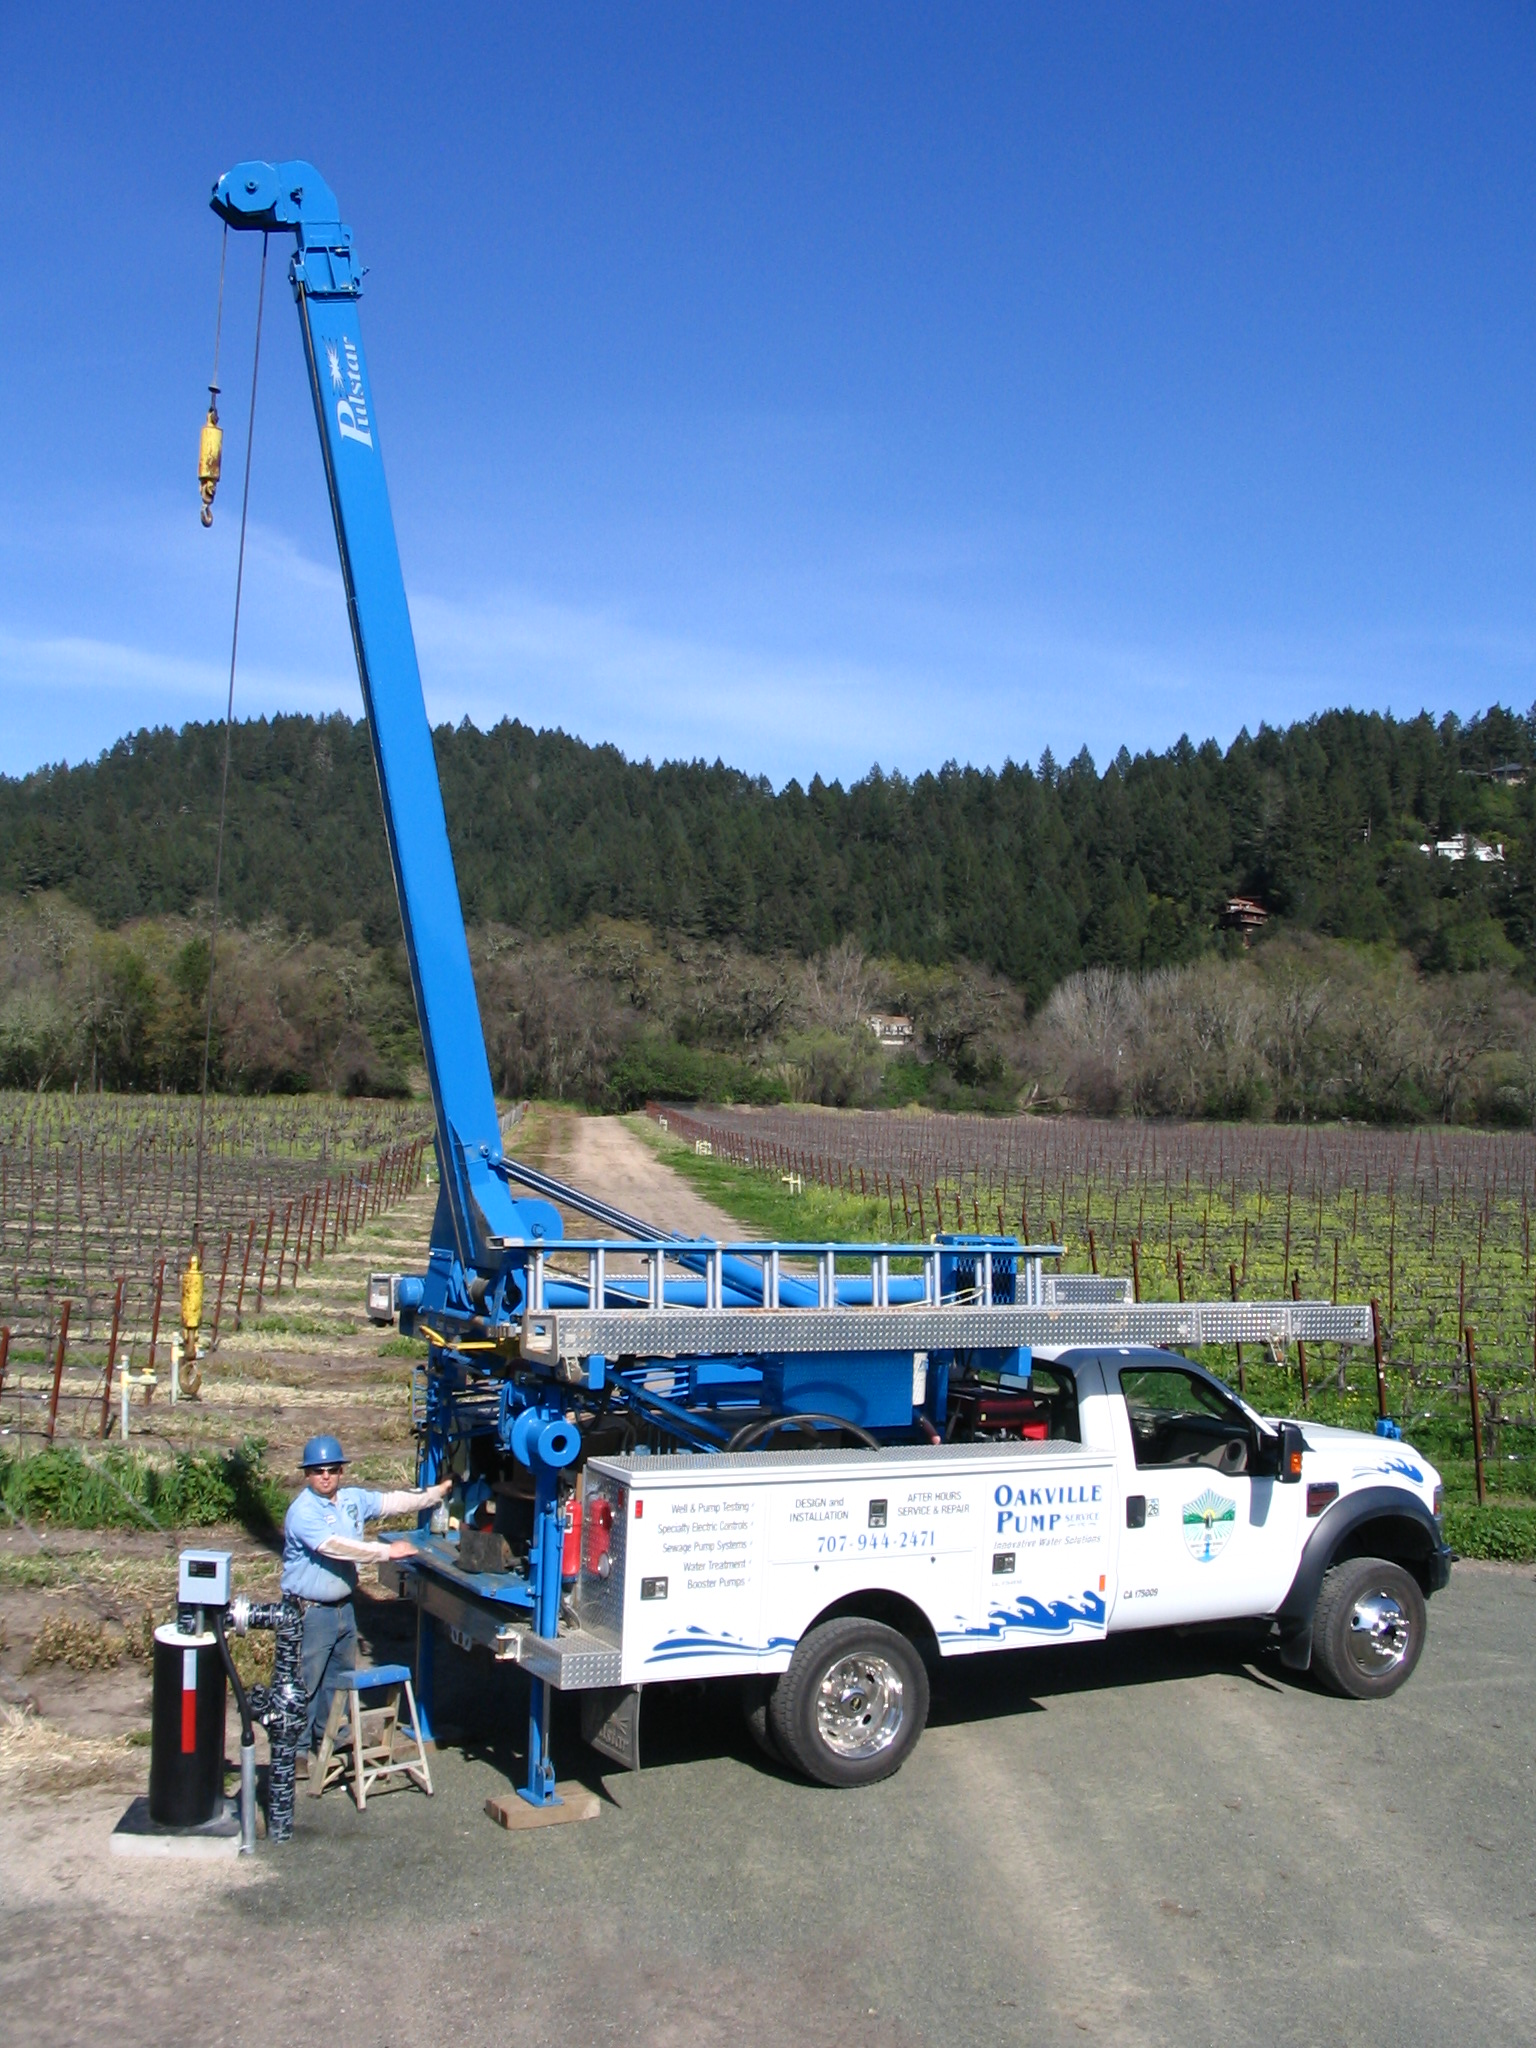 Installation of well pump for vinyard and winery water needs in Napa, Sonoma County.